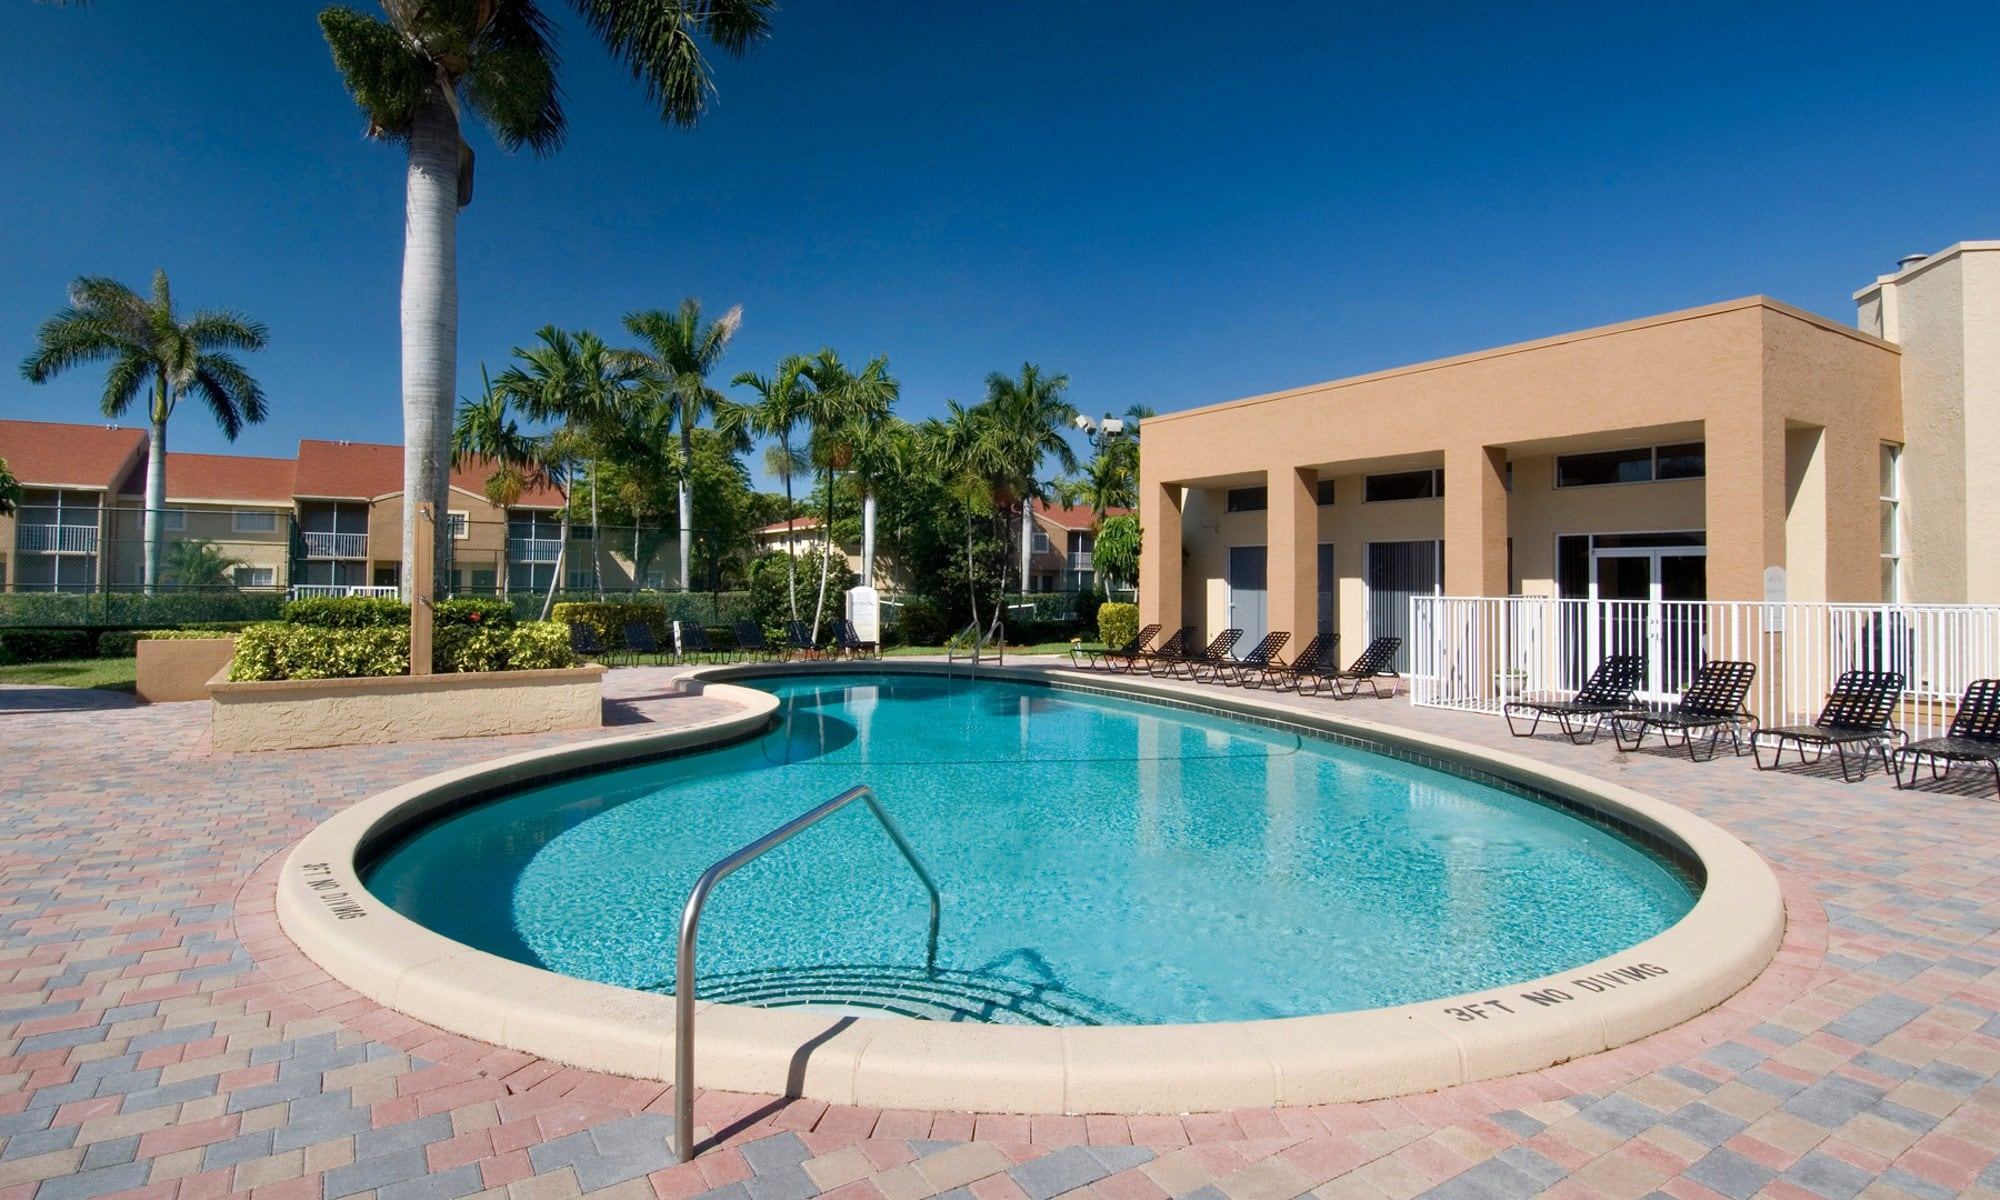 West palm beach fl apartments for rent azalea village - 2 bedroom suites in west palm beach fl ...